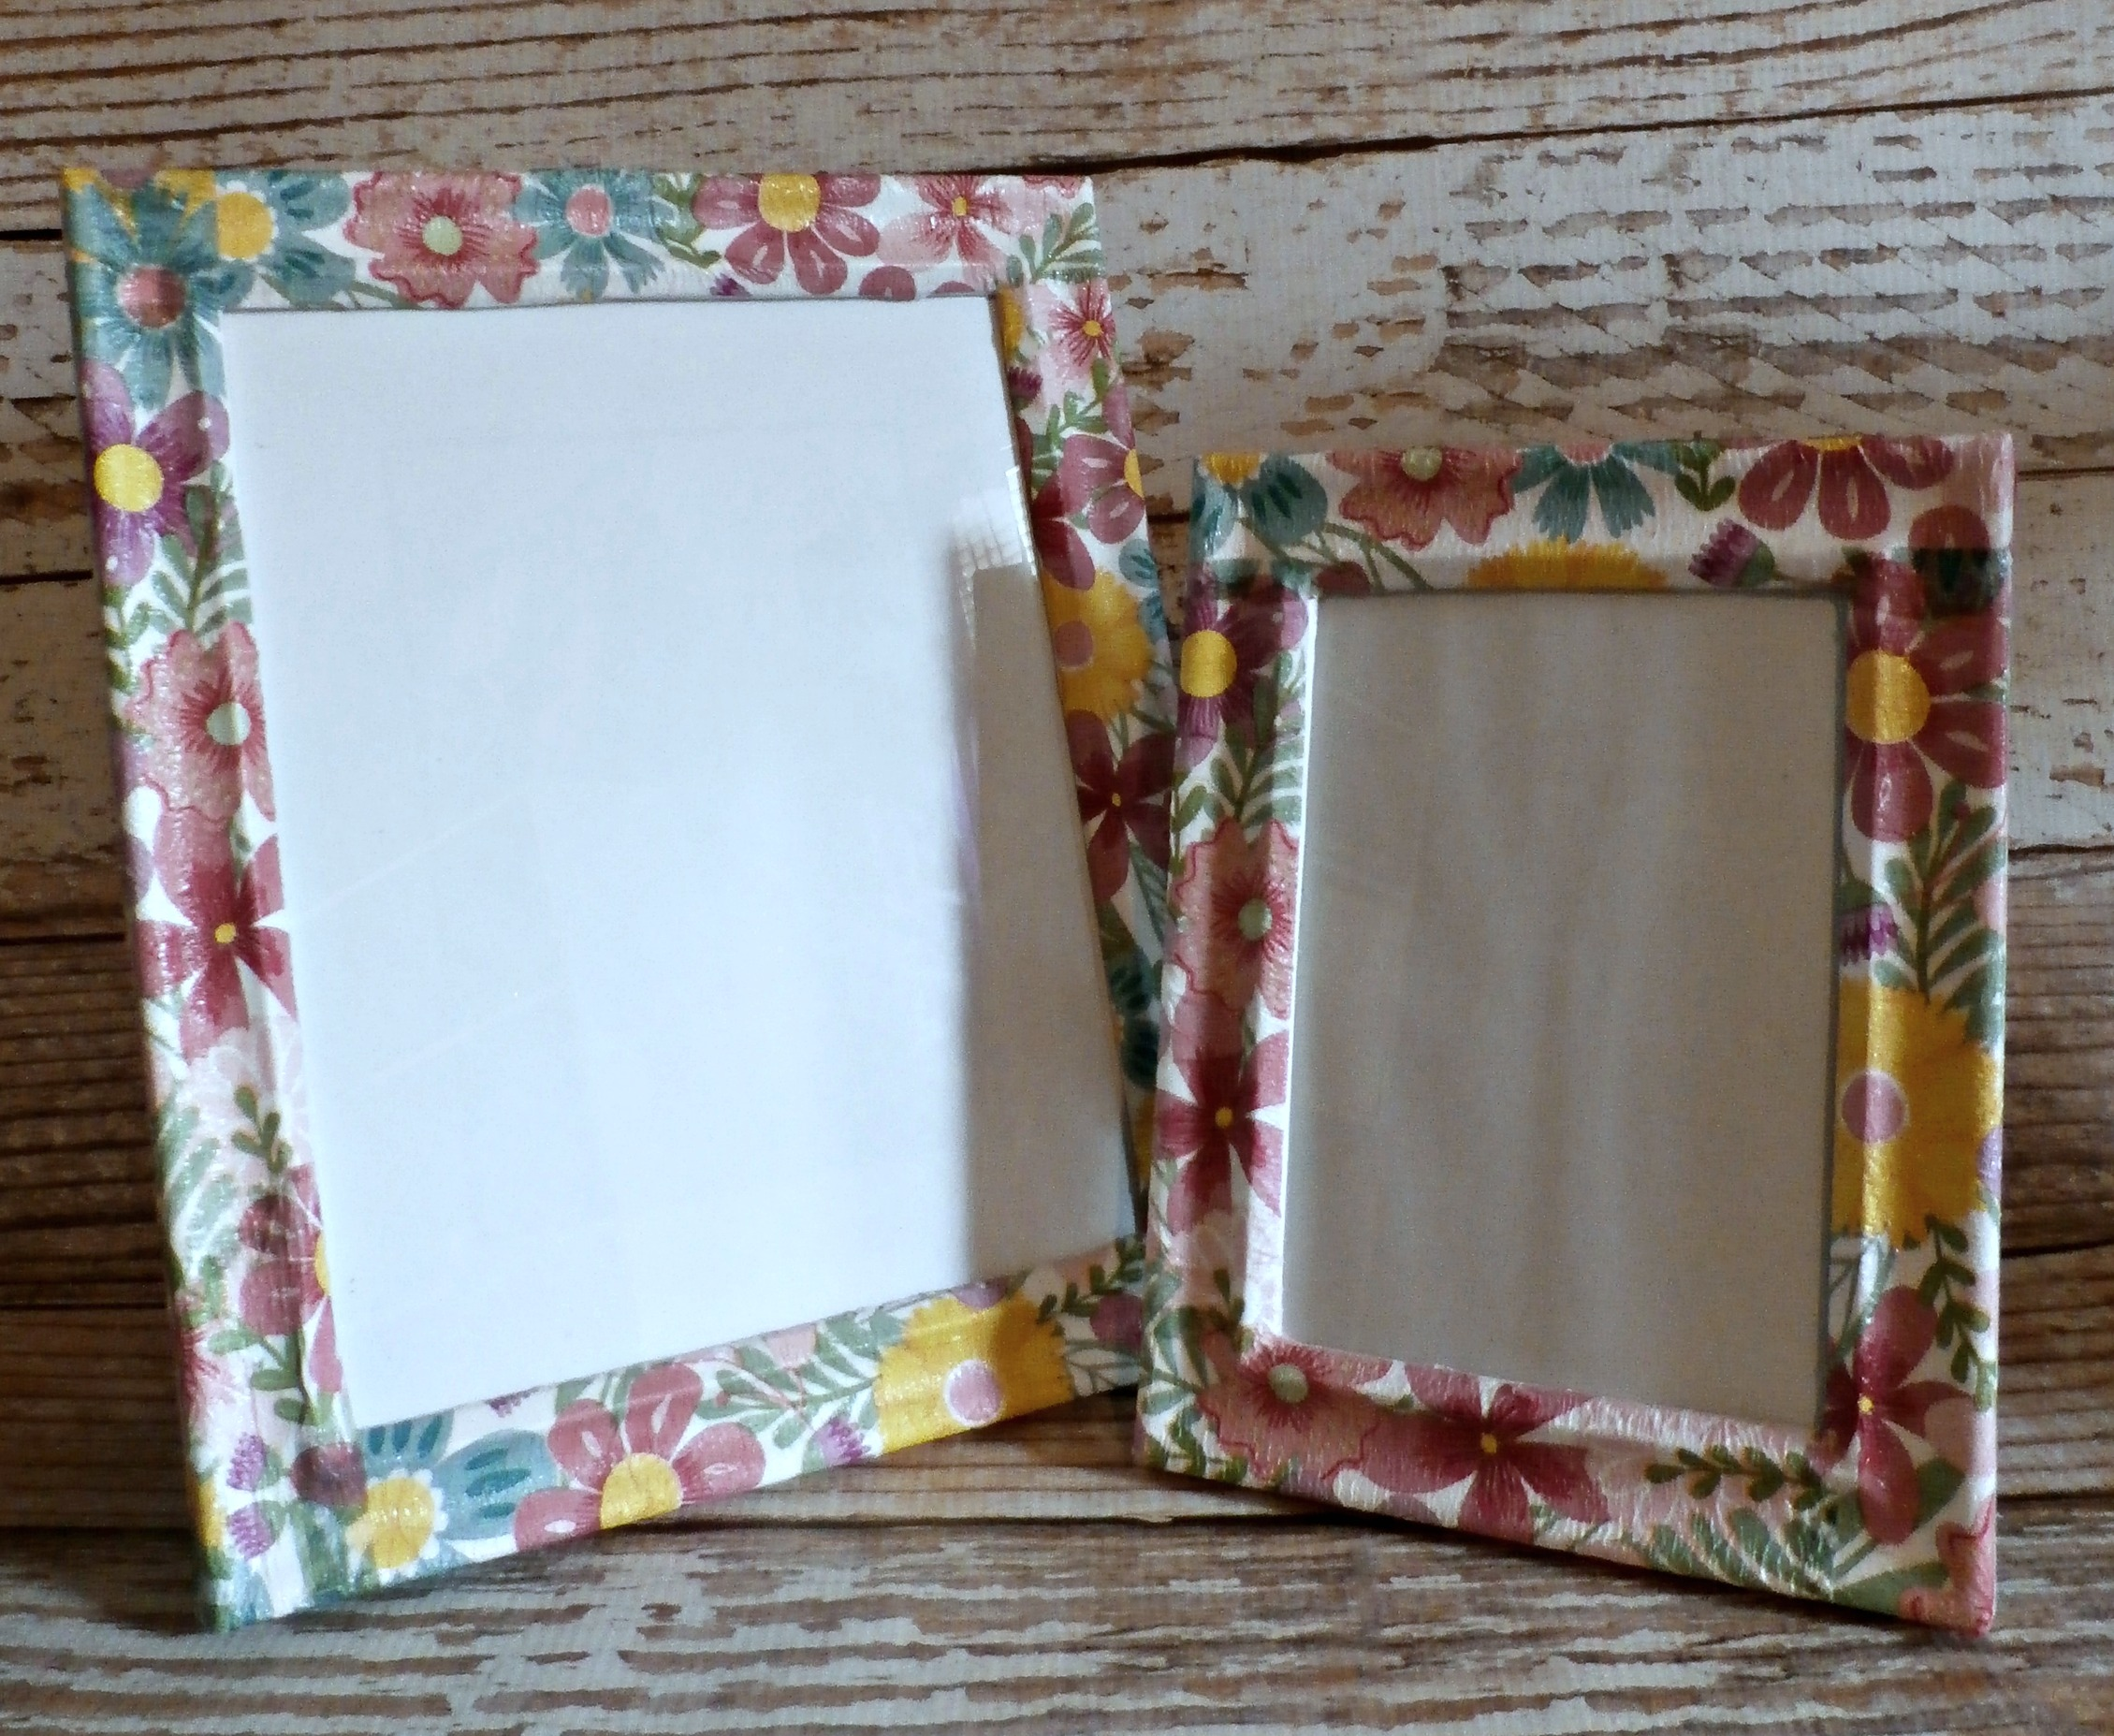 Picture Frames Set of 2 , Flower Power Decoupage Acrylic Picture Frames  from Mrs. Miller\u0027s Gift Shop